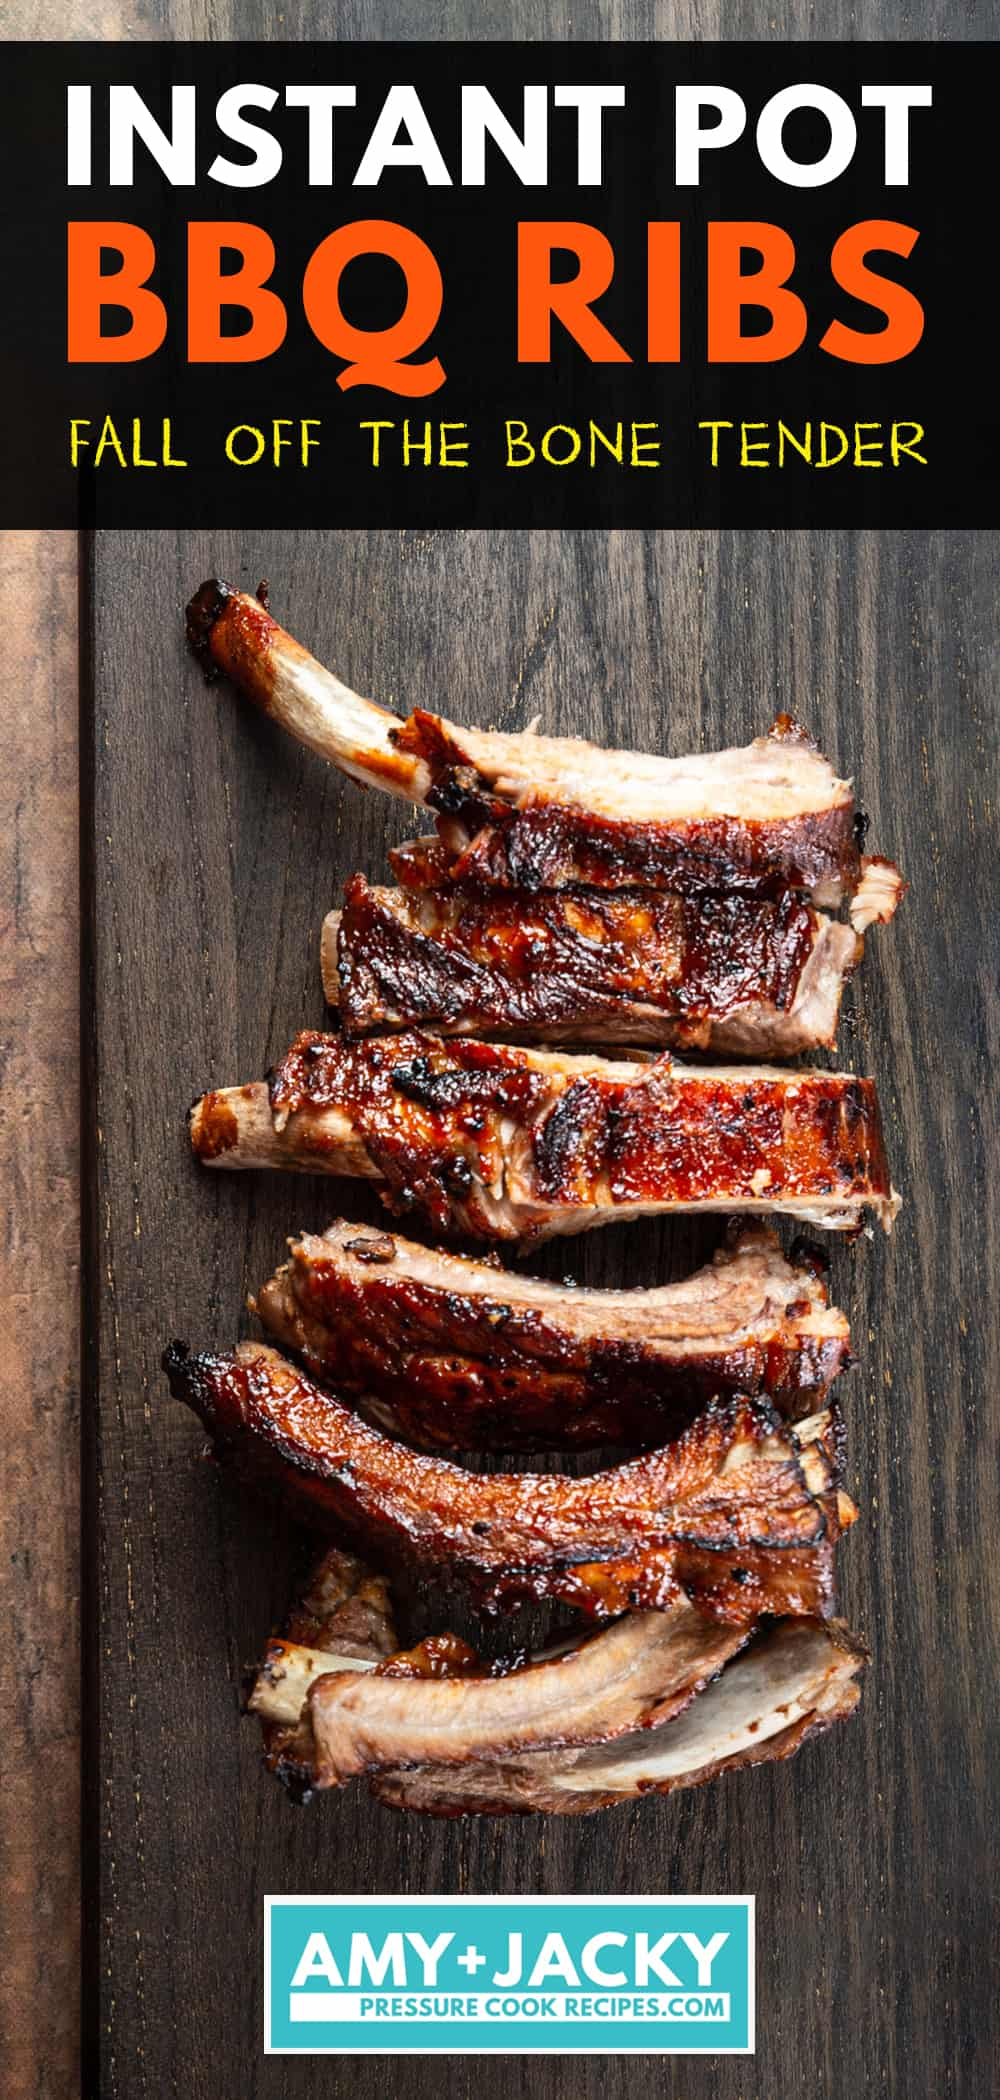 Instant Pot Ribs: Make BBQ Ribs in Instant Pot in 40 minutes! Deliciously tender & juicy BBQ Ribs are great beginner recipe for weeknight dinners or BBQ party.